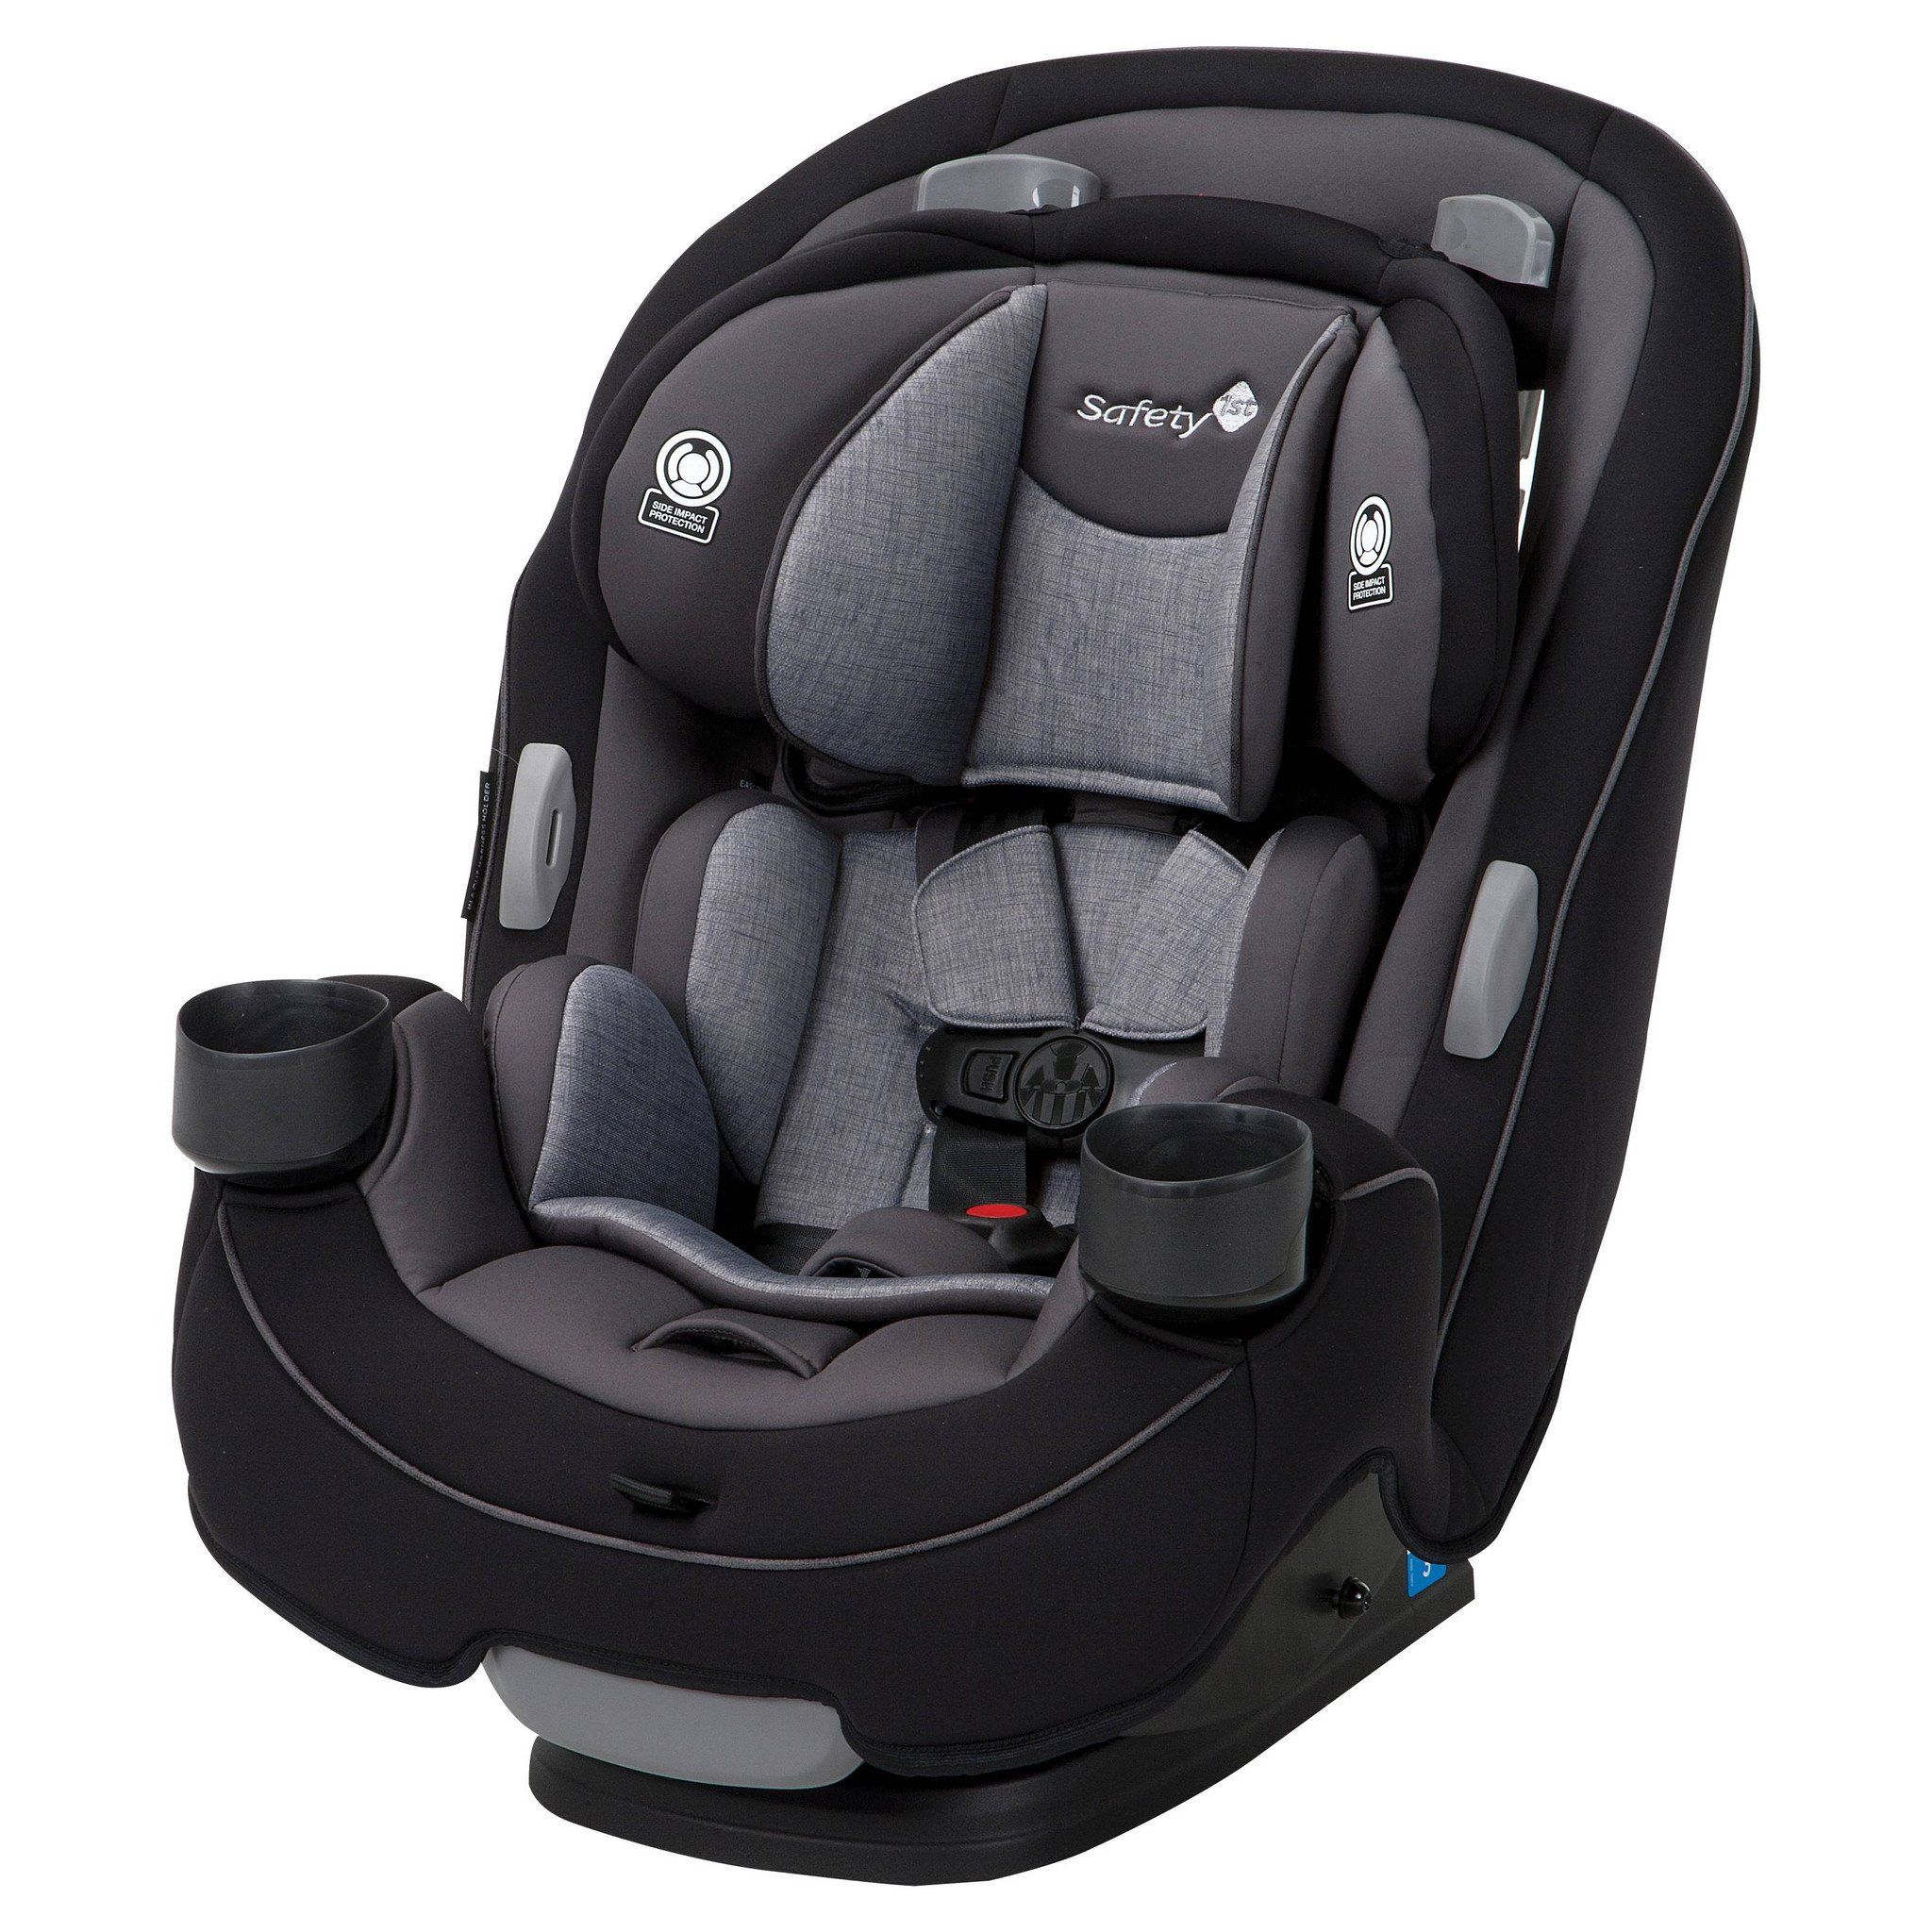 Safety 1st Grow and Go 3in1 Car Seat Harvest Moon